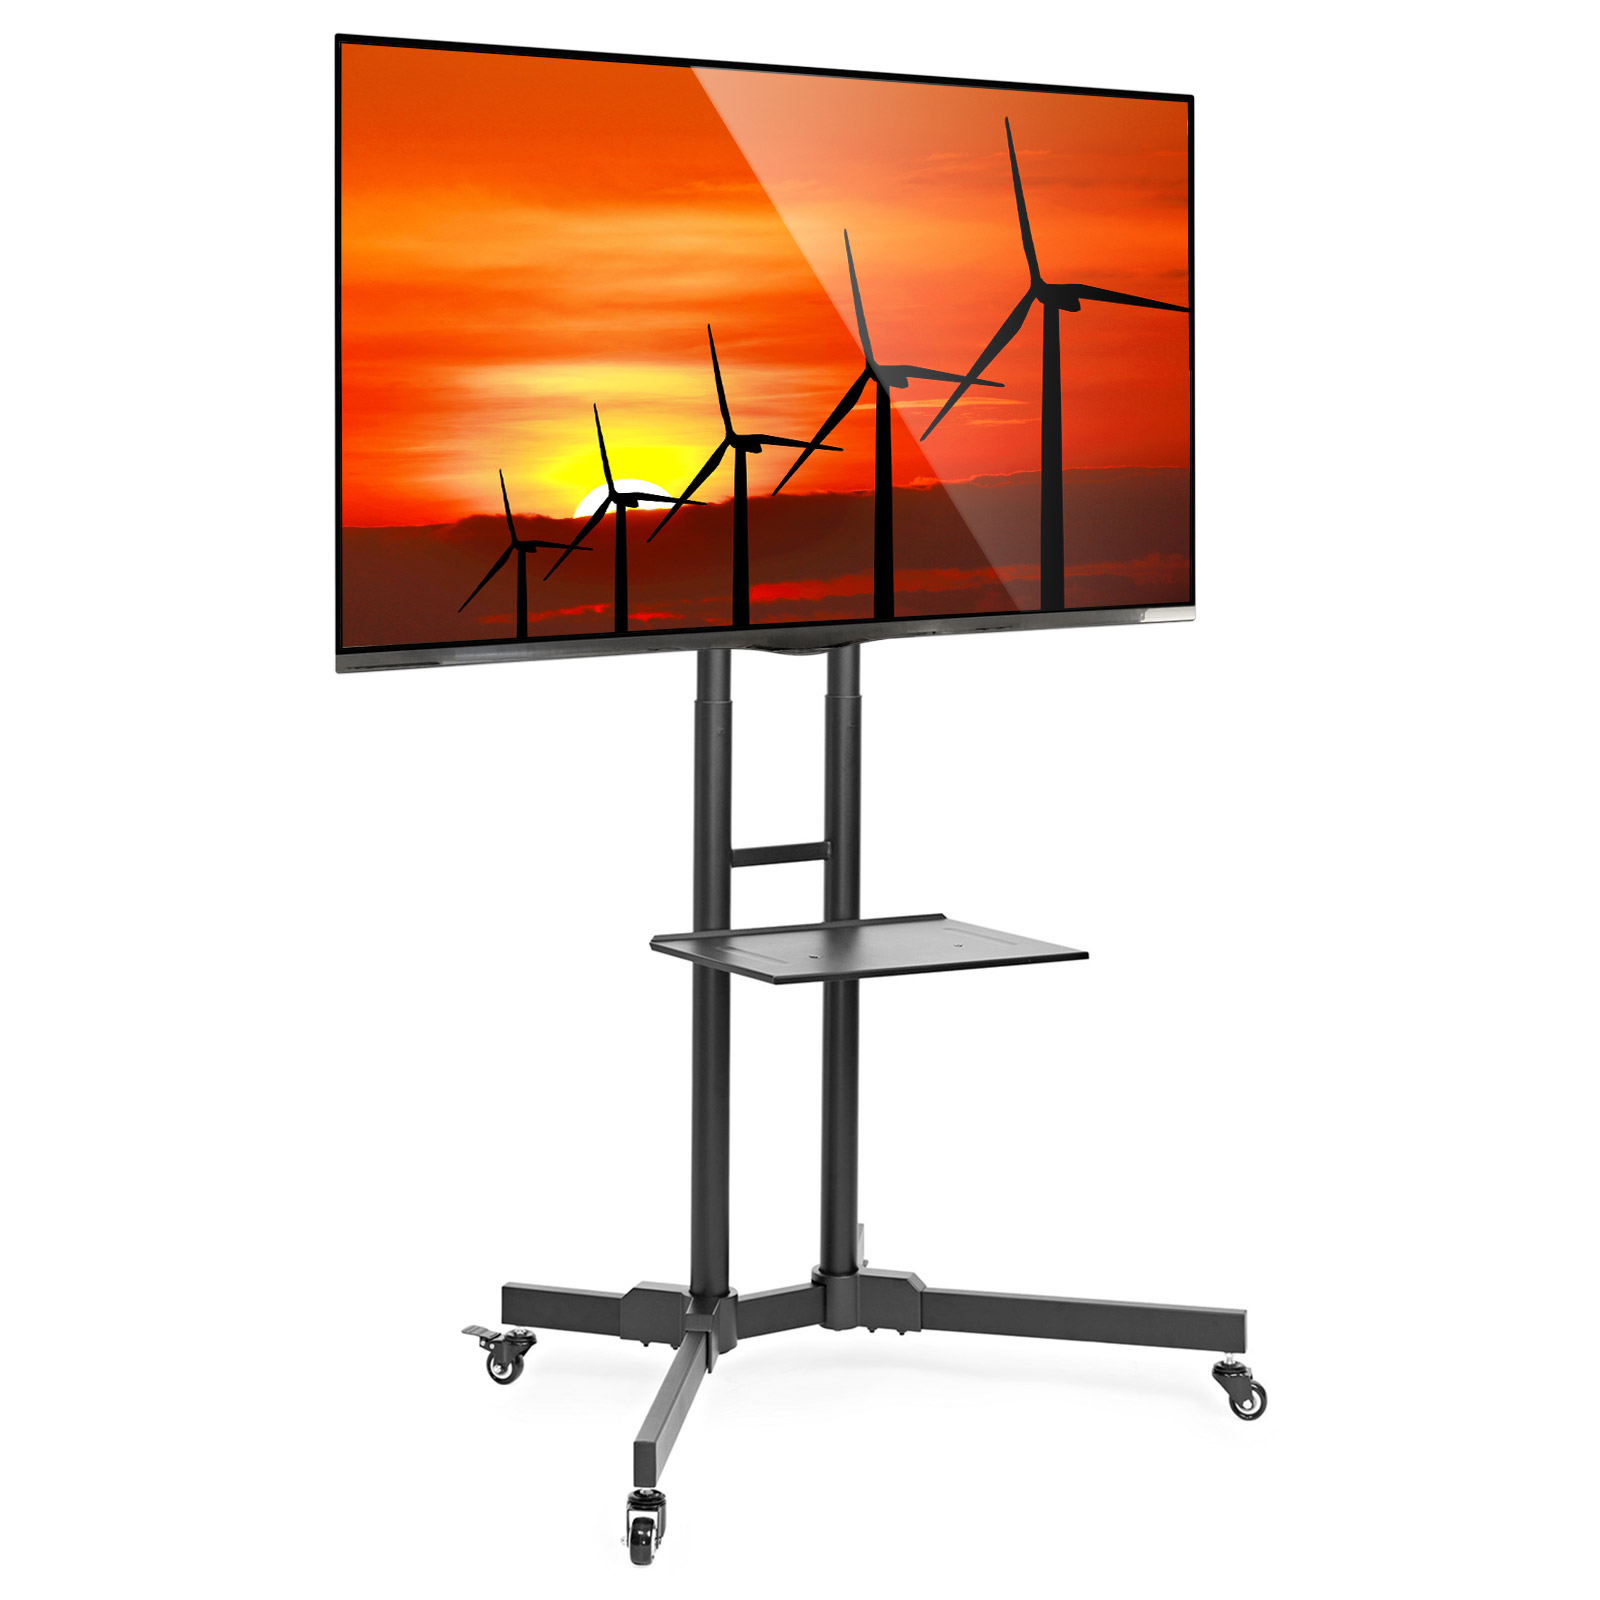 88d6174a673 Mount Factory Rolling TV Stand Mobile TV Cart for 32-65 inch Plasma Screen